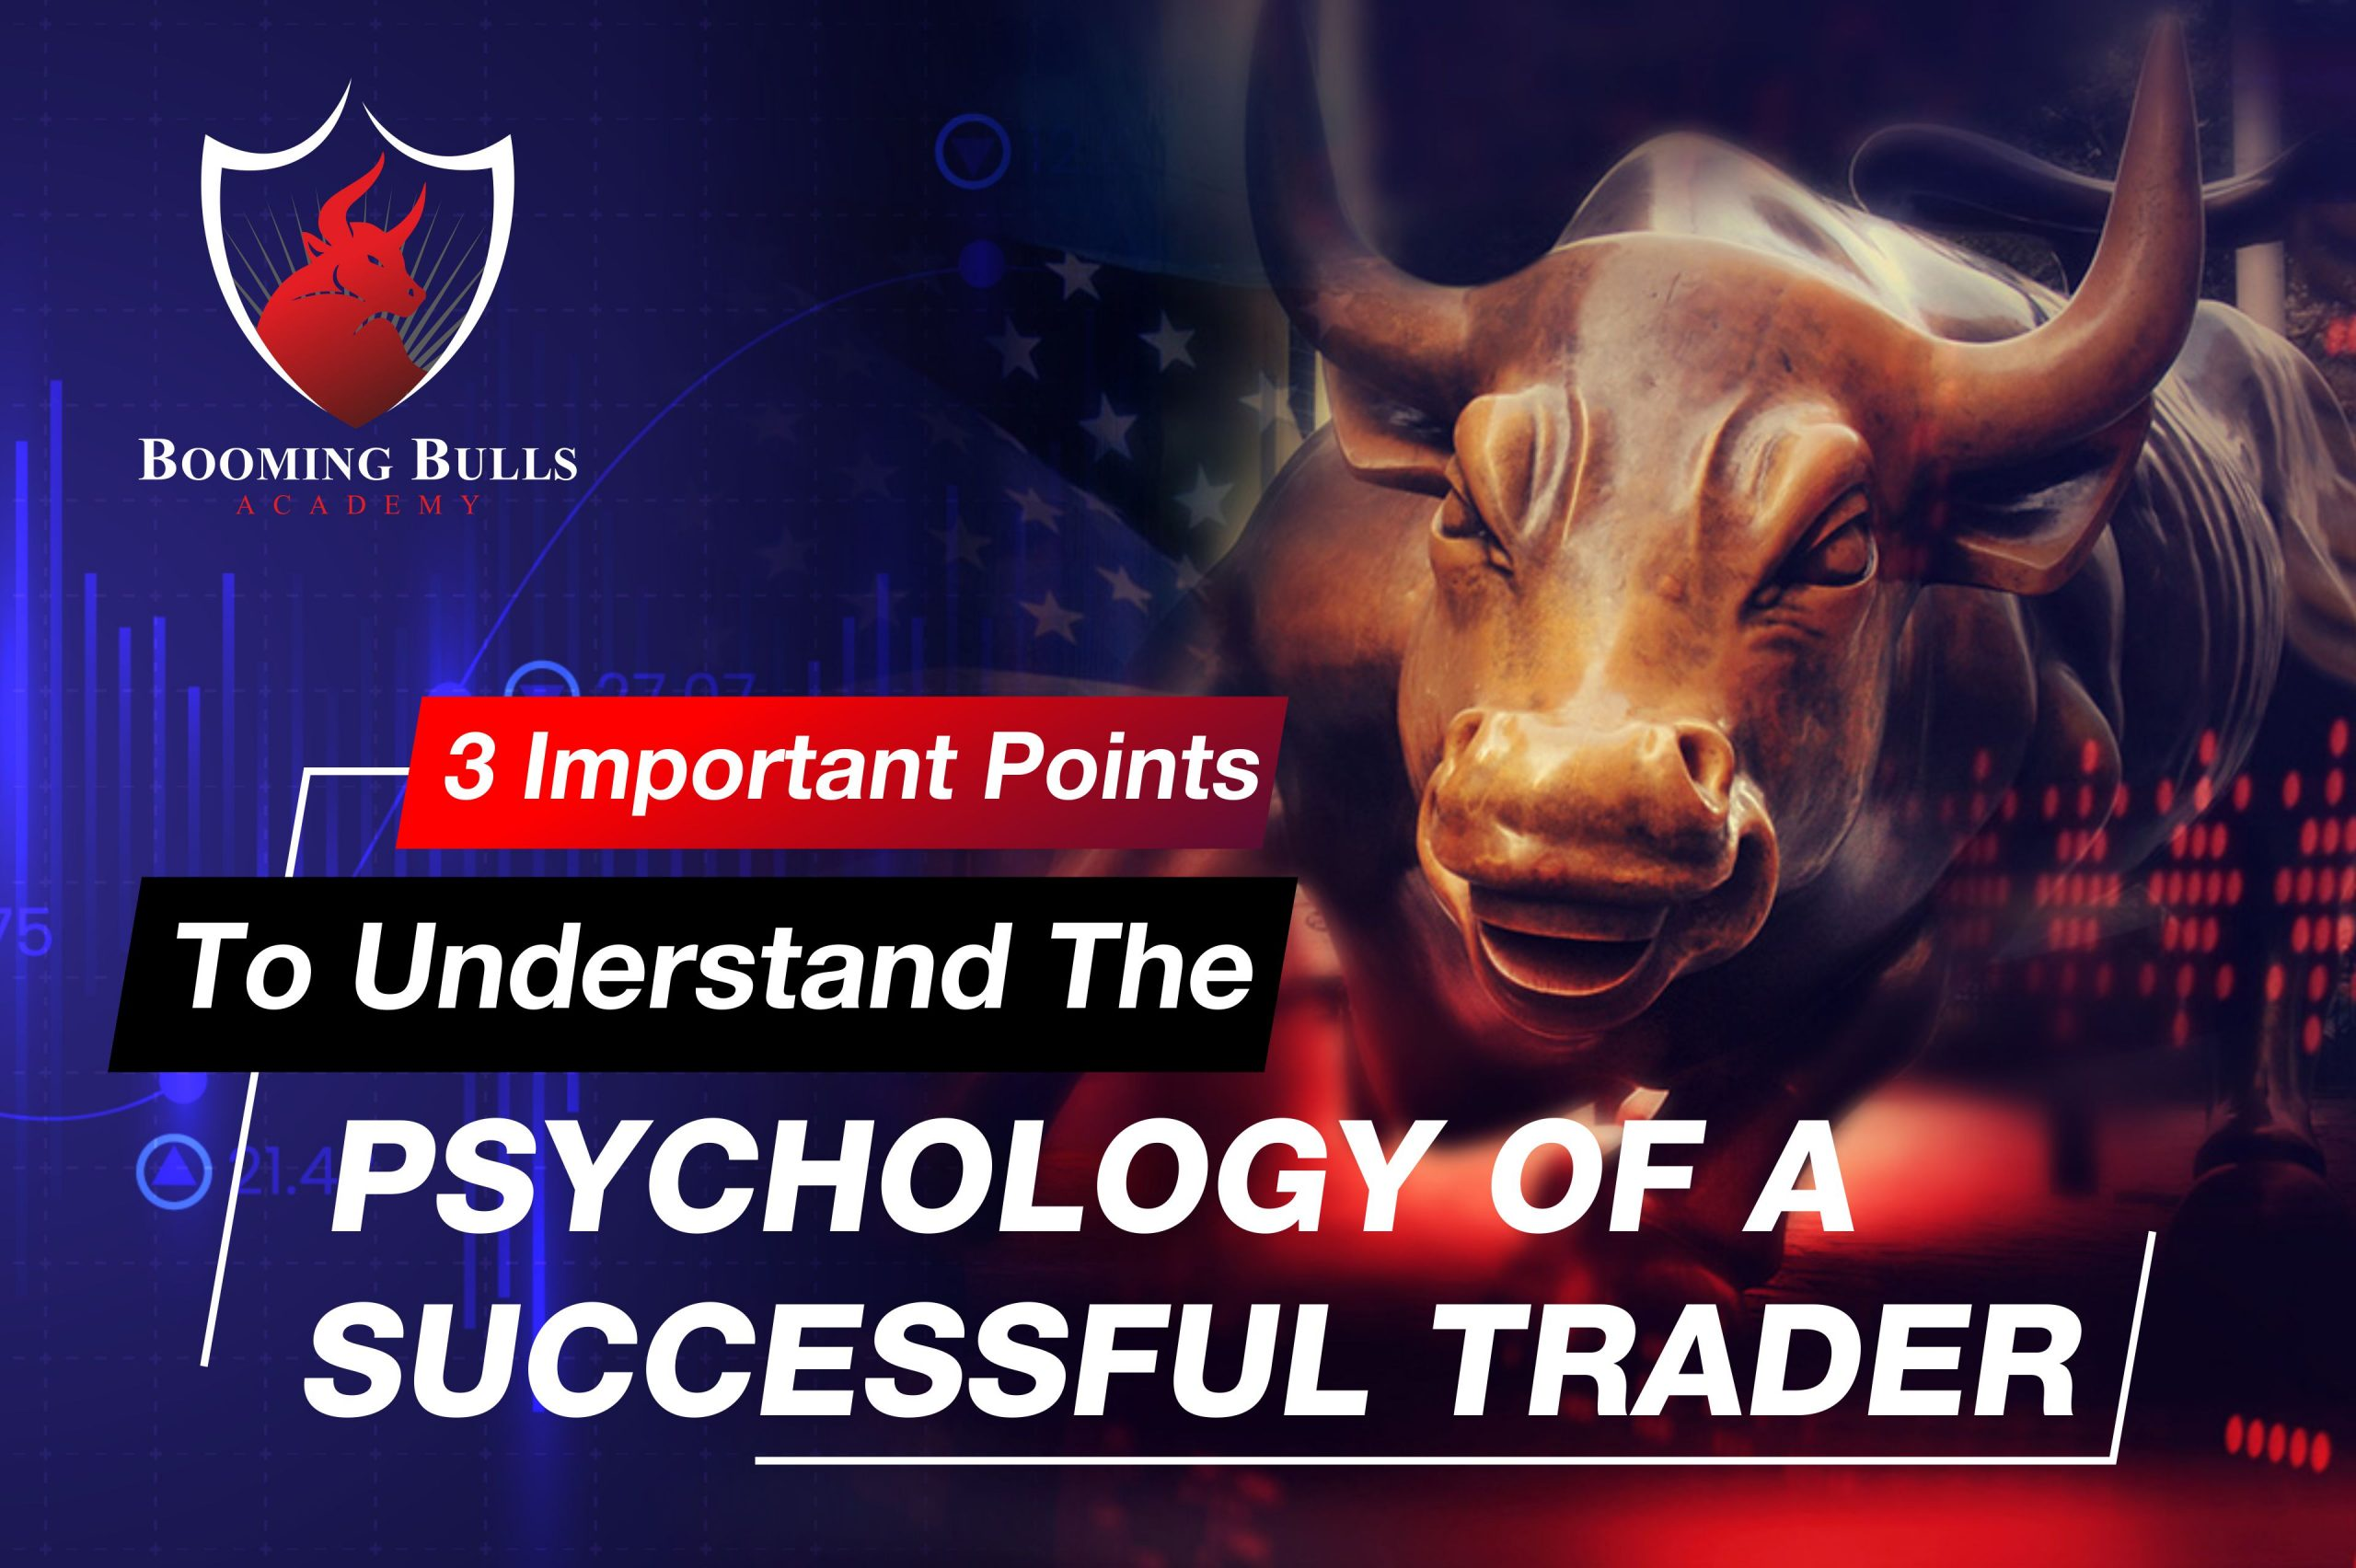 3 Important Points To Understand The Psychology Of A Successful Trader